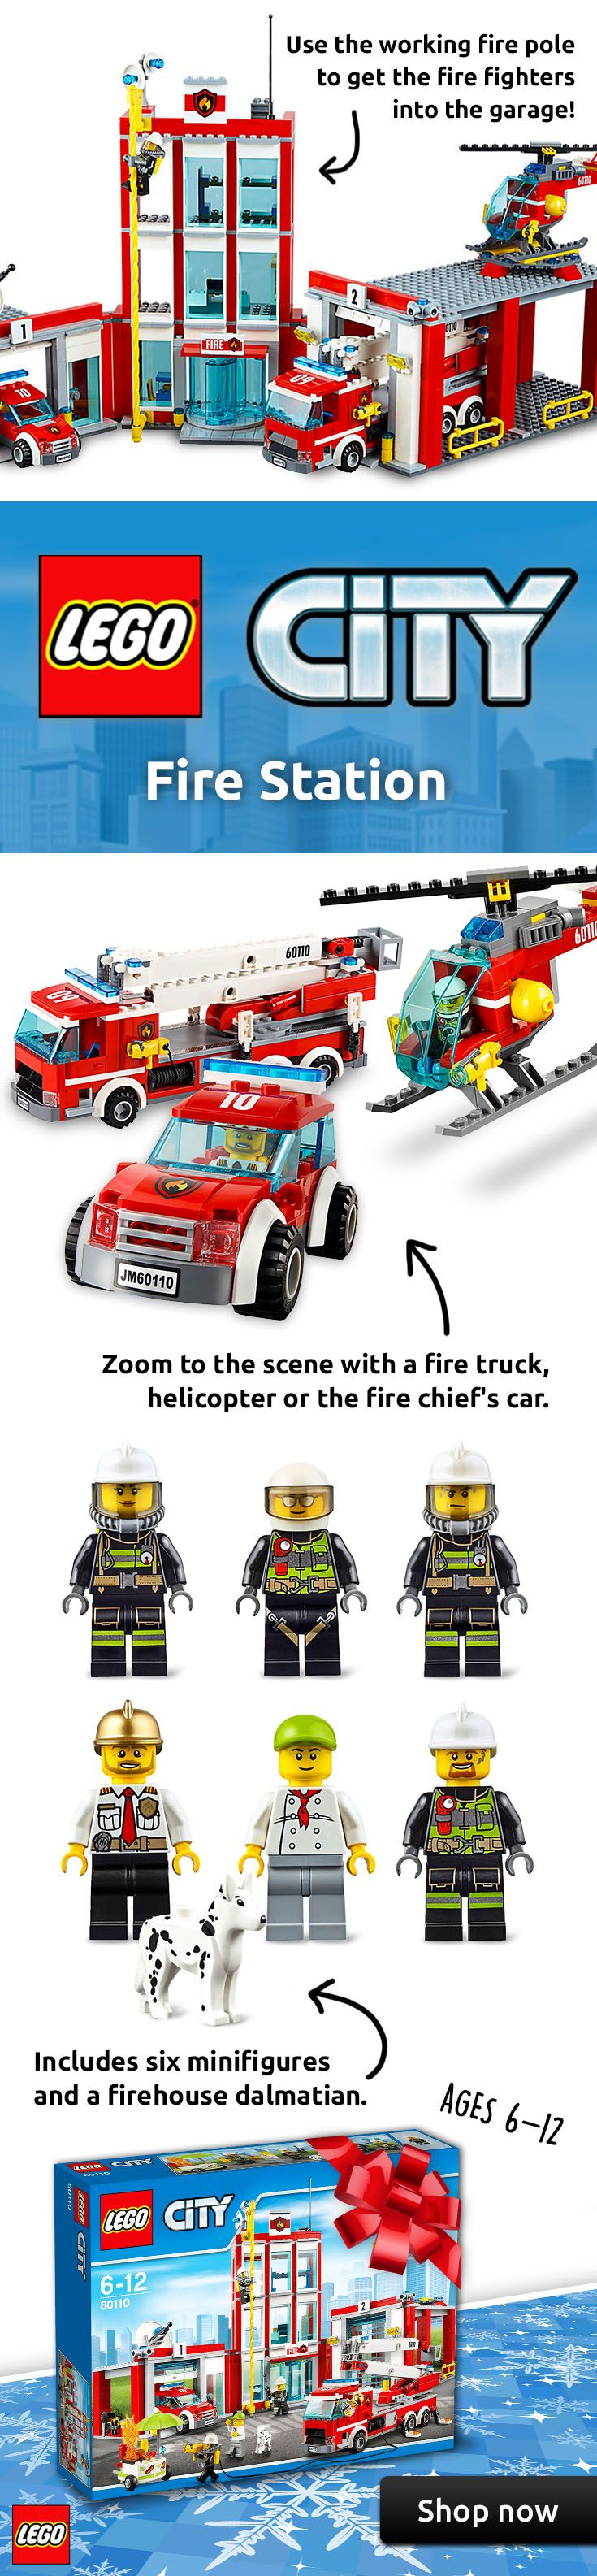 The LEGO® City Fire Station is the perfect holiday gift idea for a 6-12 year old child! They can build it all by themselves and you can enjoy as they play for hours with a LEGO fire pole, helicopter, fire truck, 6 minifigures and a firehouse Dalmatian! Shop now for free shipping!